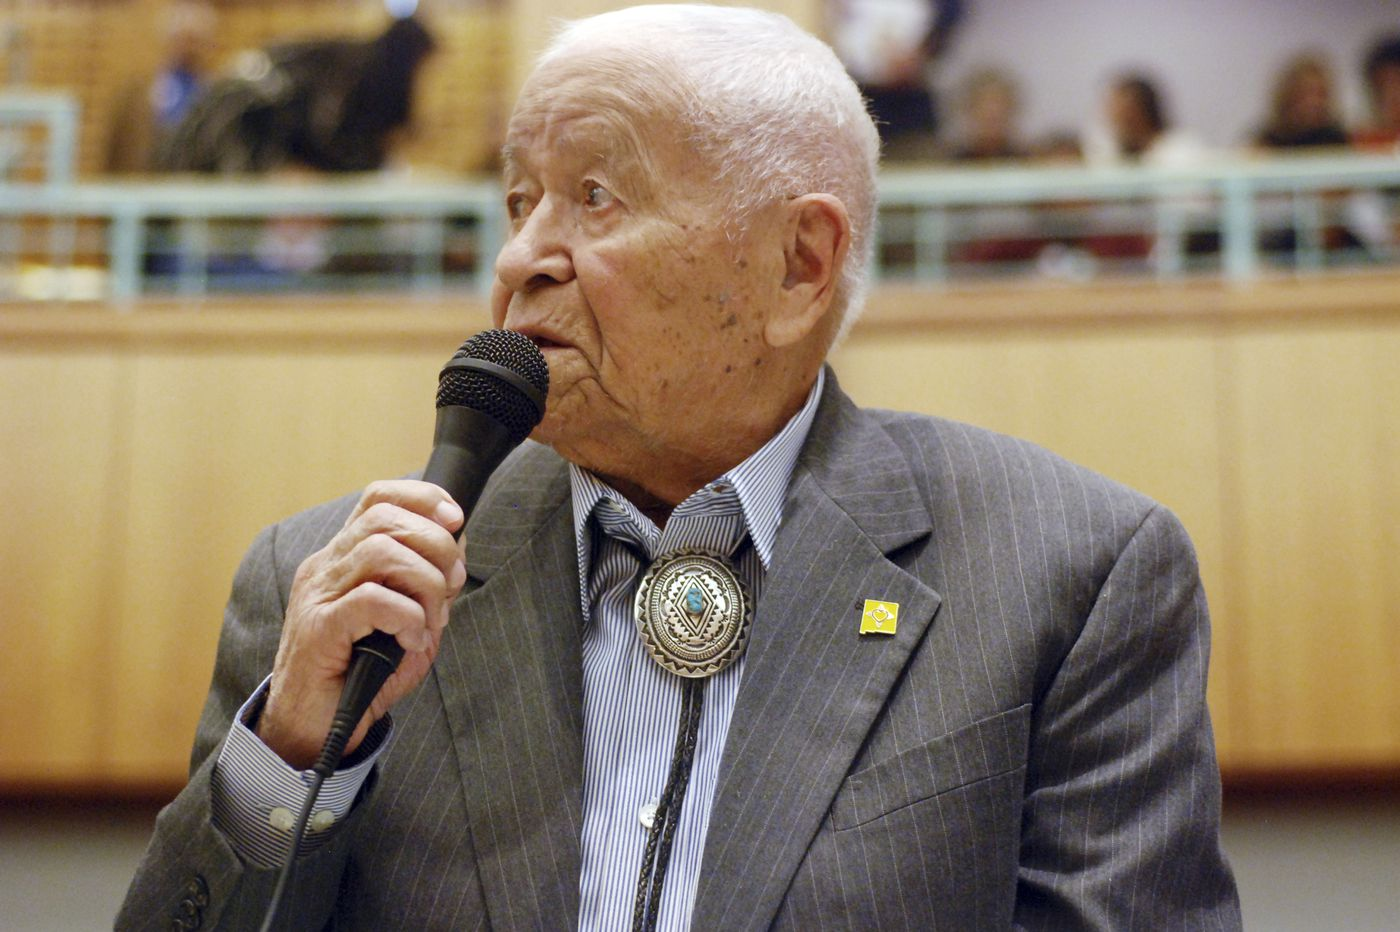 John Pinto, WWII Code Talker and longtime N.M. lawmaker, dies at 94